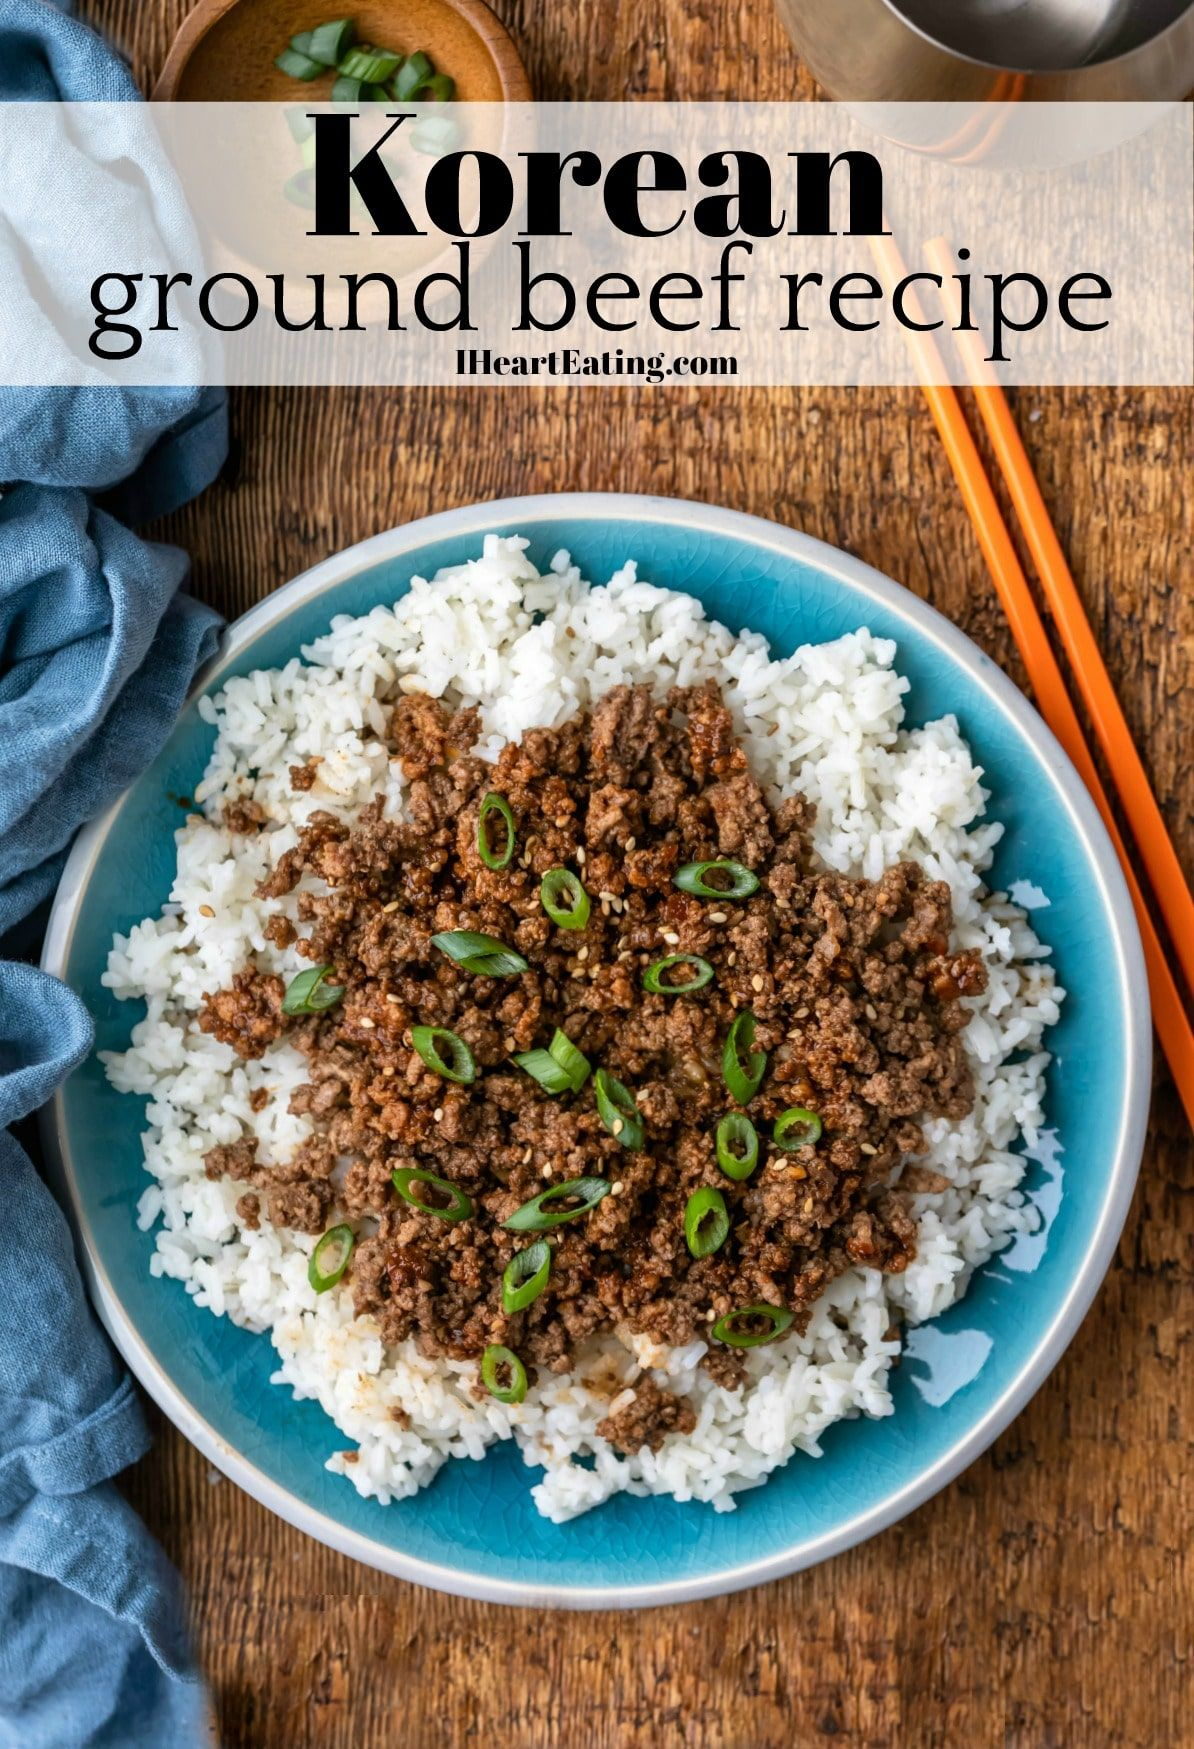 Korean Ground Beef In 2020 Dinner Recipes Easy Family Beef Recipes Korean Ground Beef